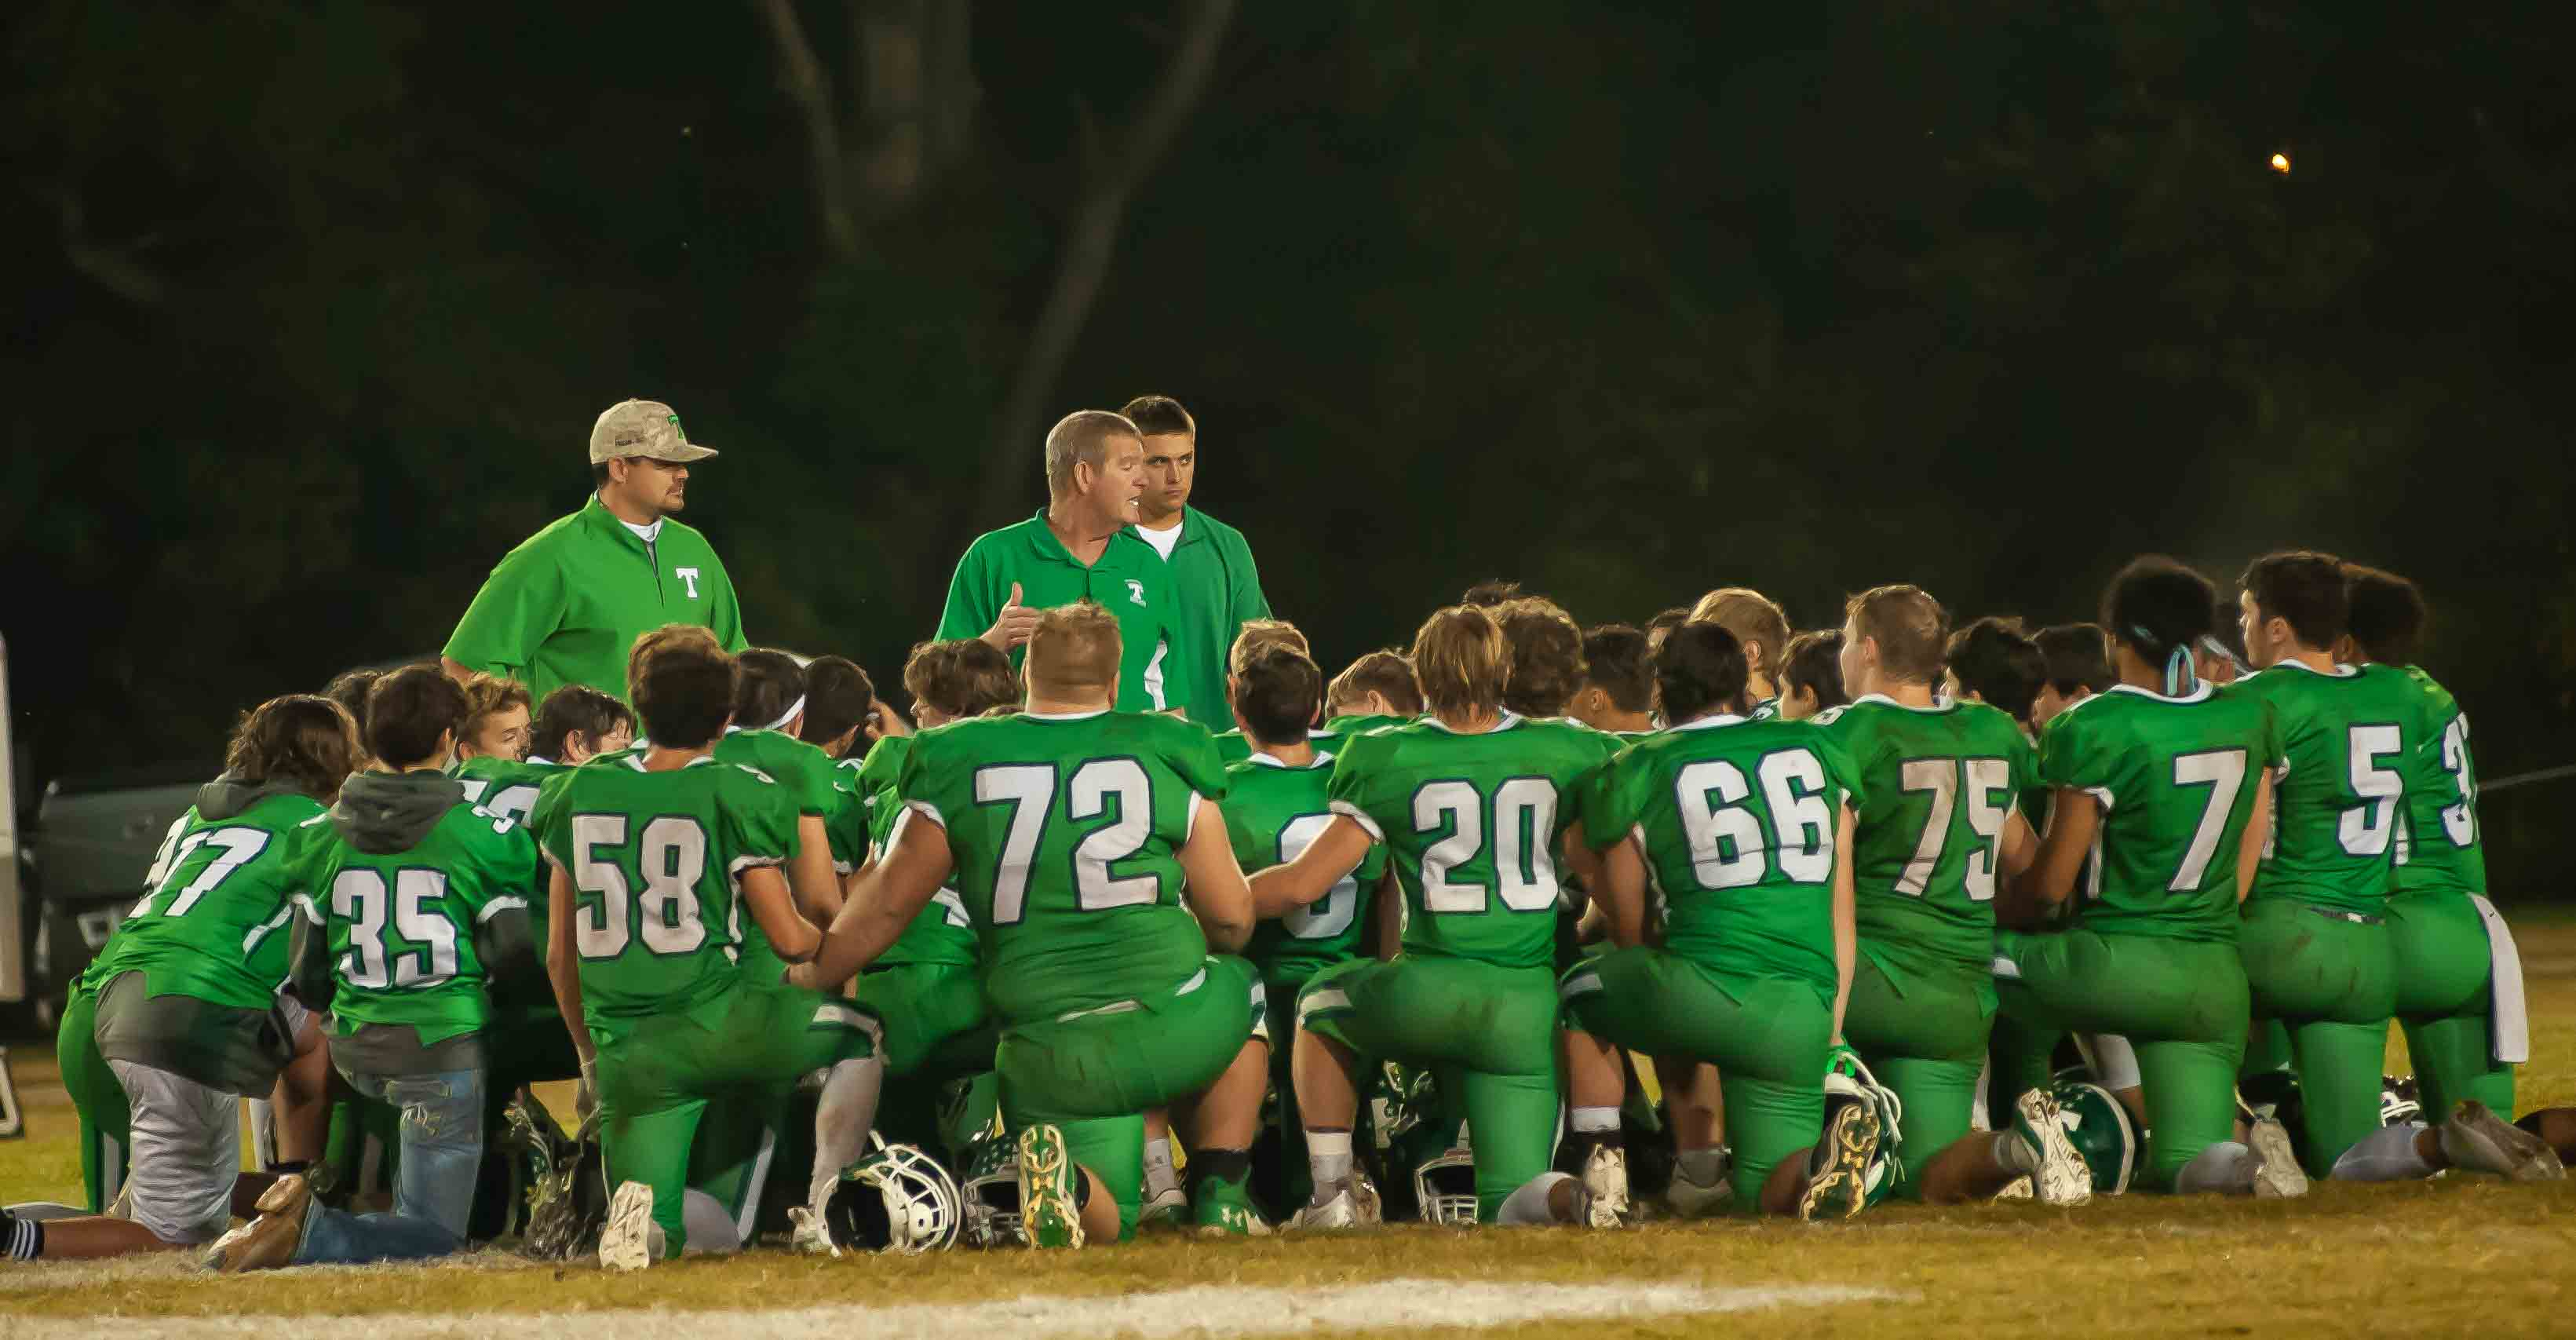 THAYER, MO - OCTOBER 9: Thayer Bobcats coaching staff and players kneel and pray after the game during the high school football game between the Ava Bears and the Thayer Bobcats on October 9, 2020, at the Thayer High School football field in Thayer, MO. (Photo by Curtis Thomas/AltonMo.com)